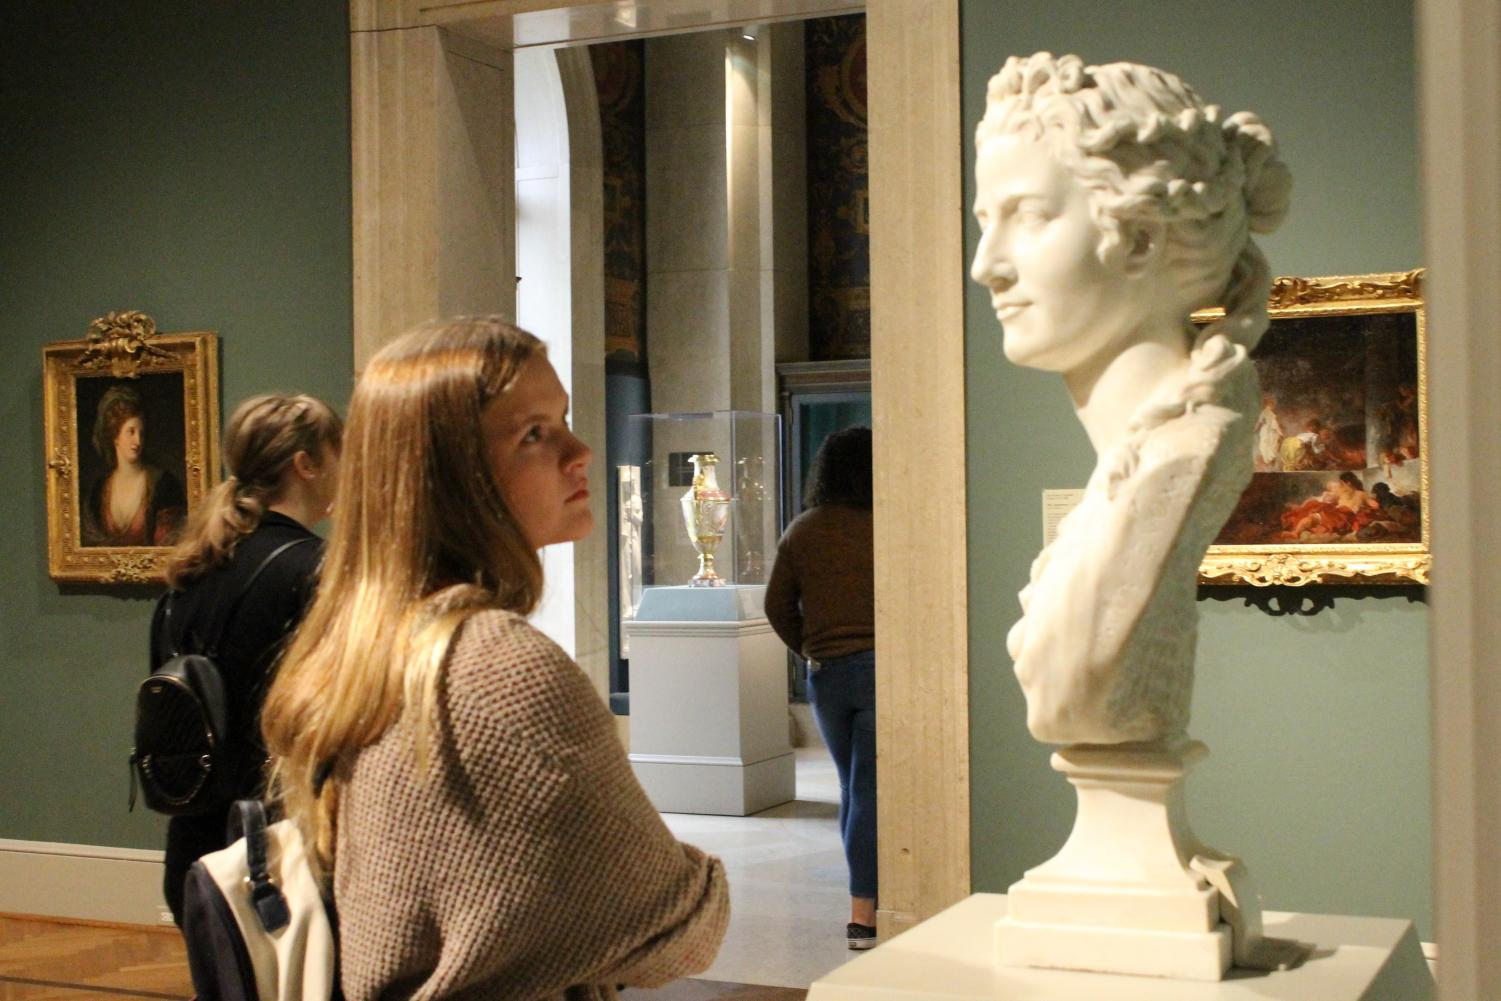 Spanish III student Millie McDowell views a bust in the STL Art Museum